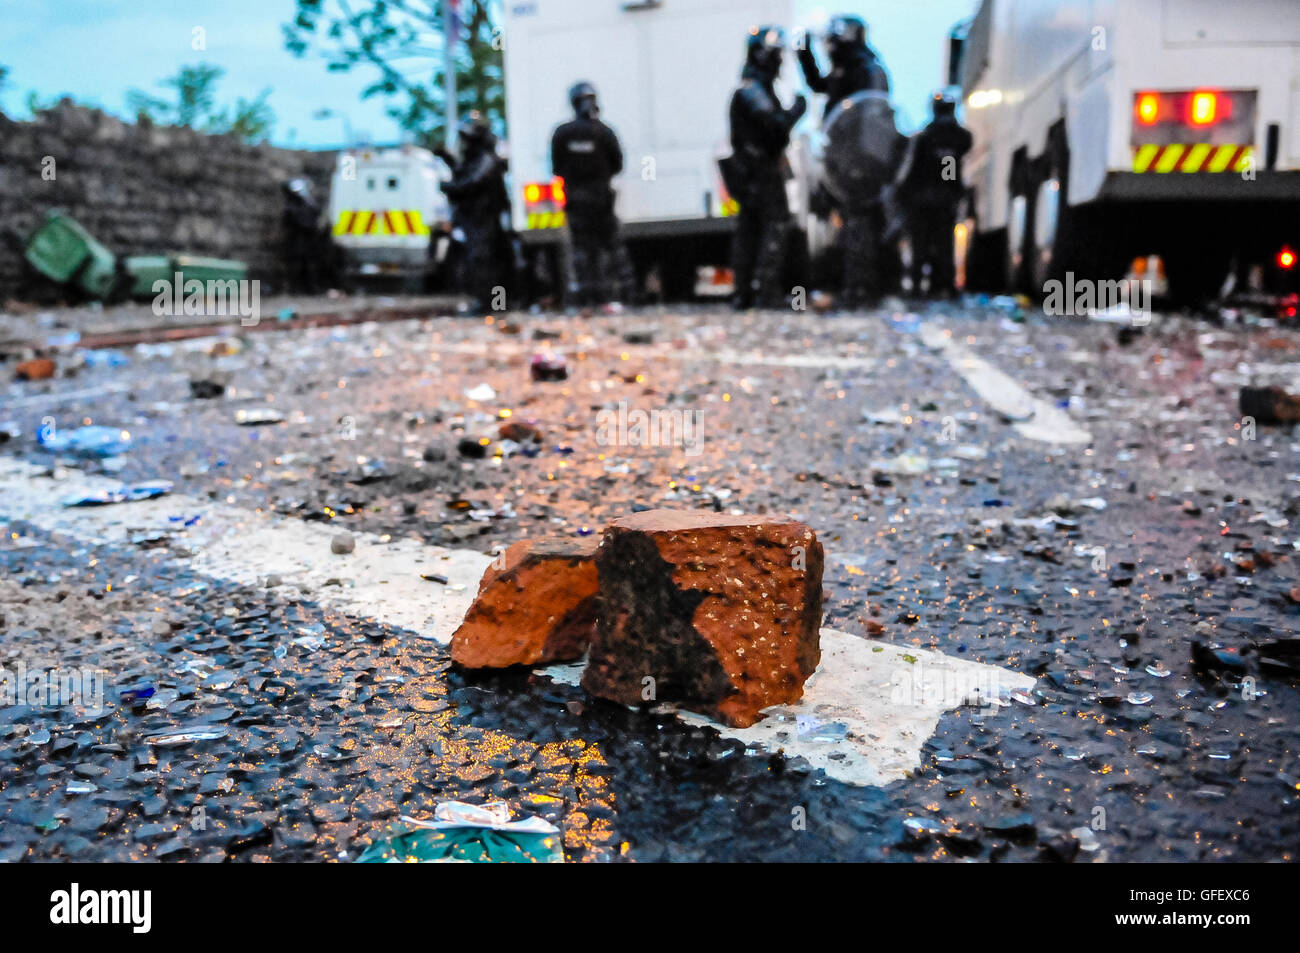 Belfast, Northern Ireland, 12th July 2013 - Loyalists riot on Woodvale Road after not being permitted to parade - Stock Image